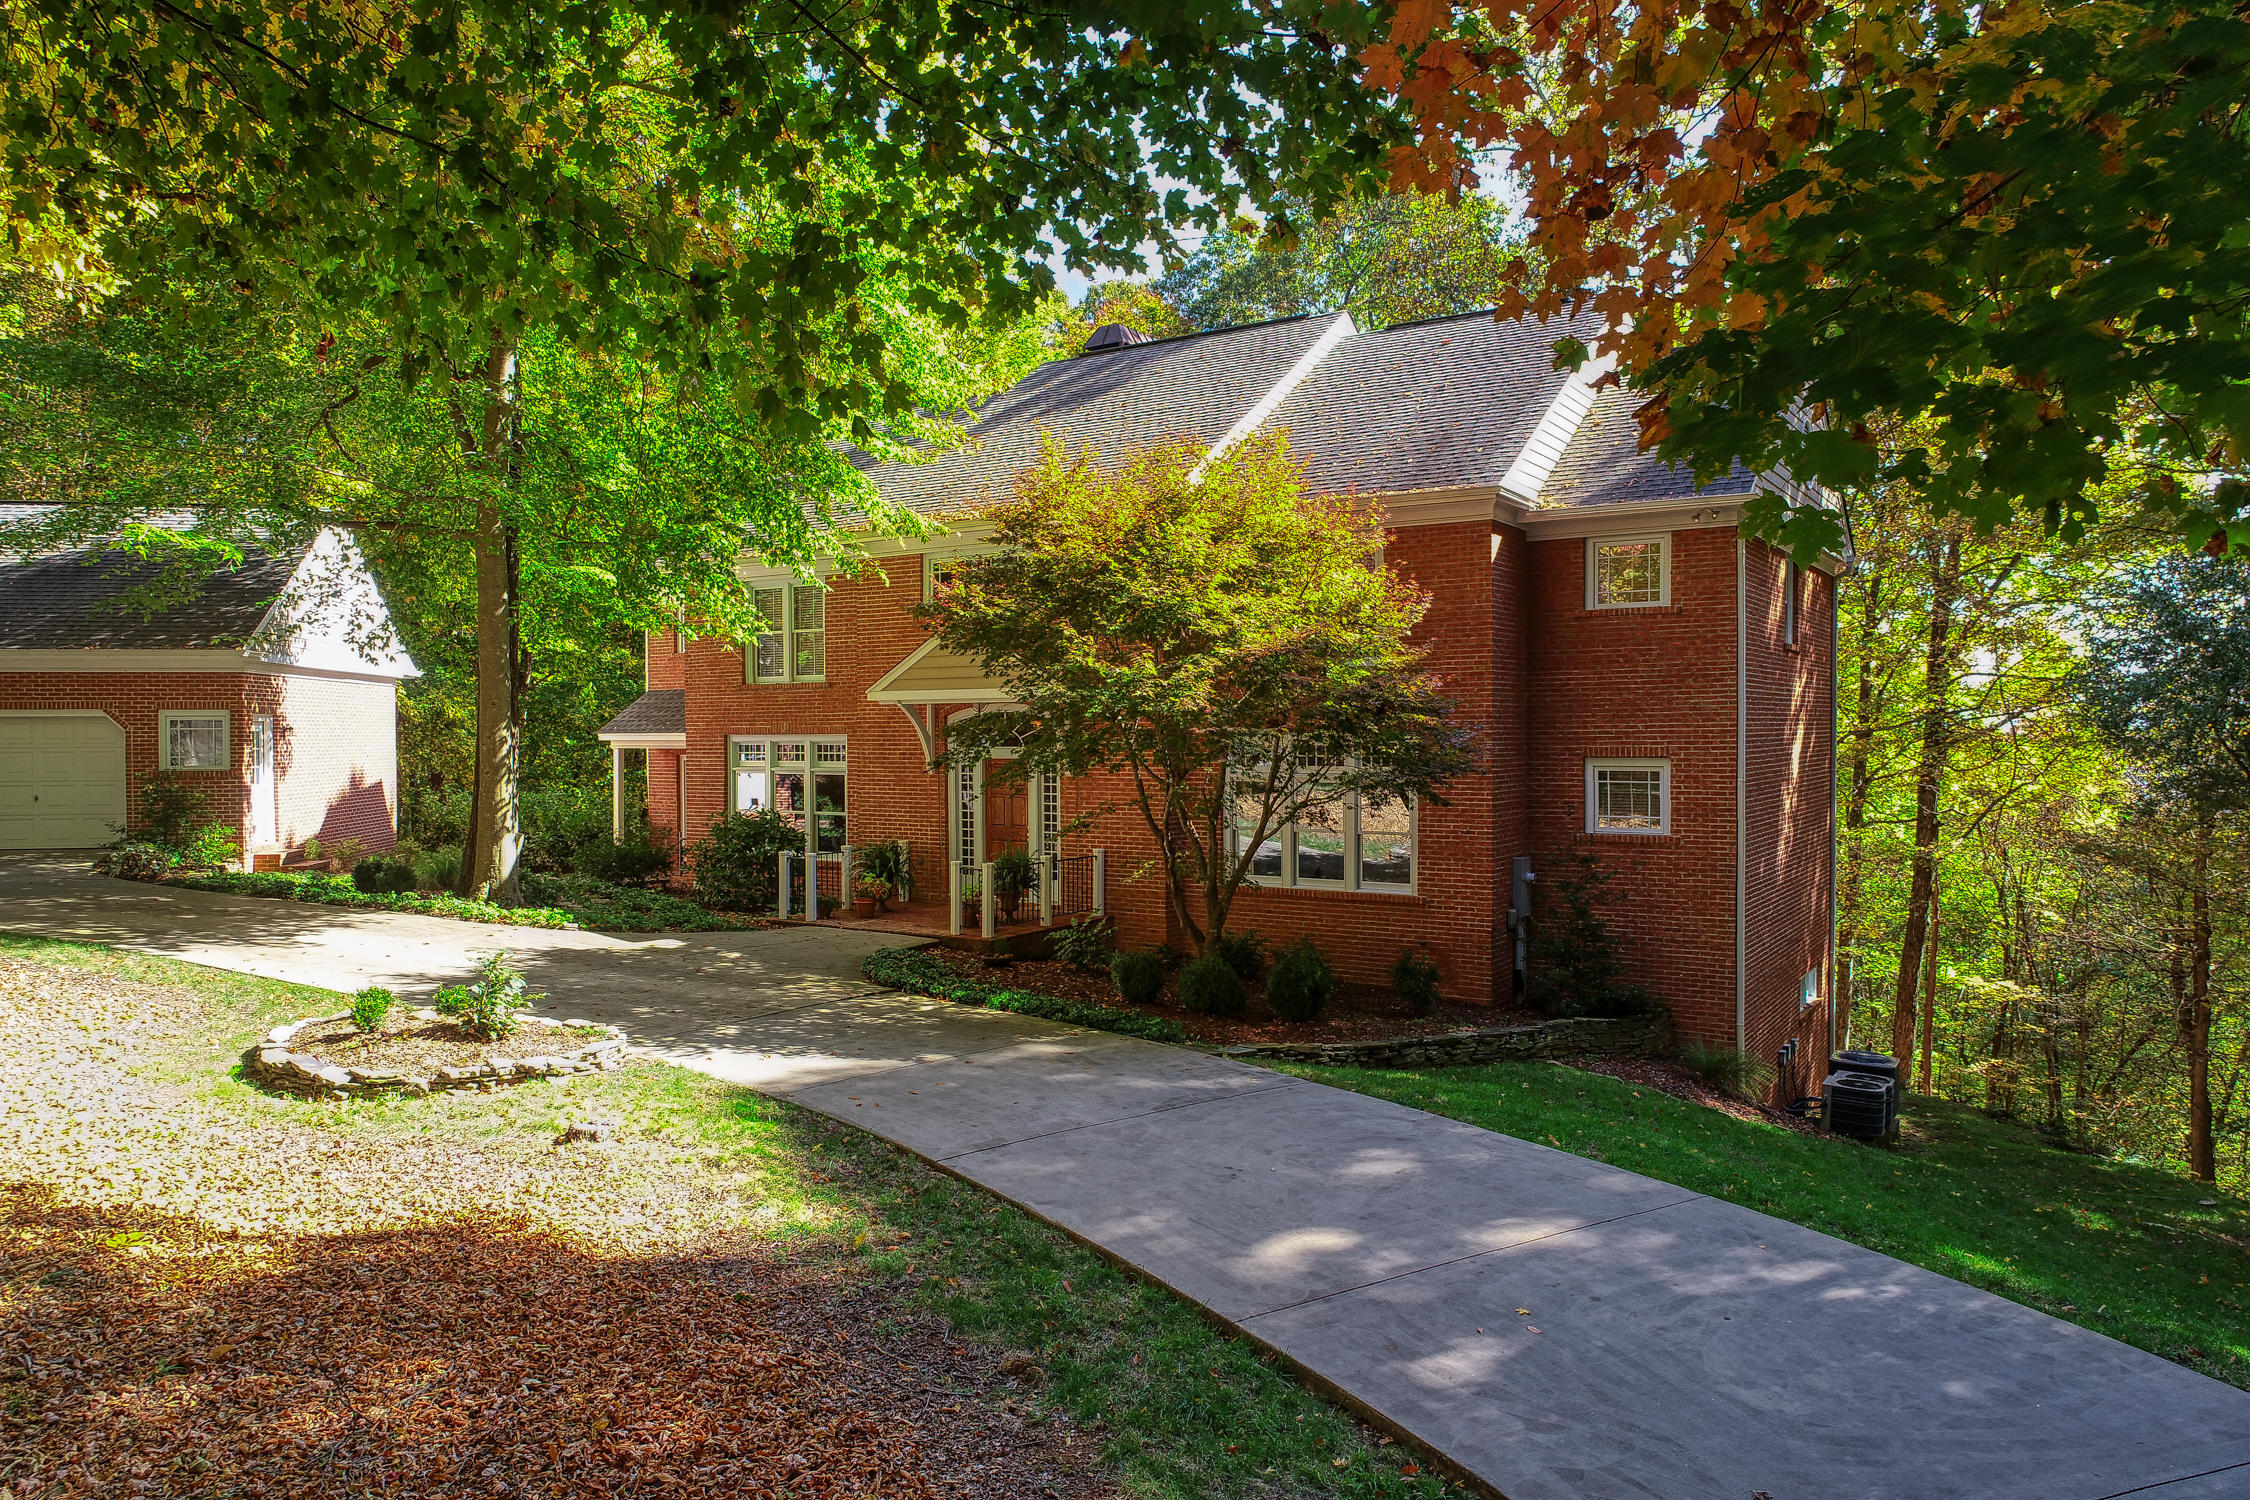 5300 Foxfire Place, Kingsport, Tennessee 37664, 4 Bedrooms Bedrooms, ,5 BathroomsBathrooms,Single Family,For Sale,5300 Foxfire Place,2,9915867